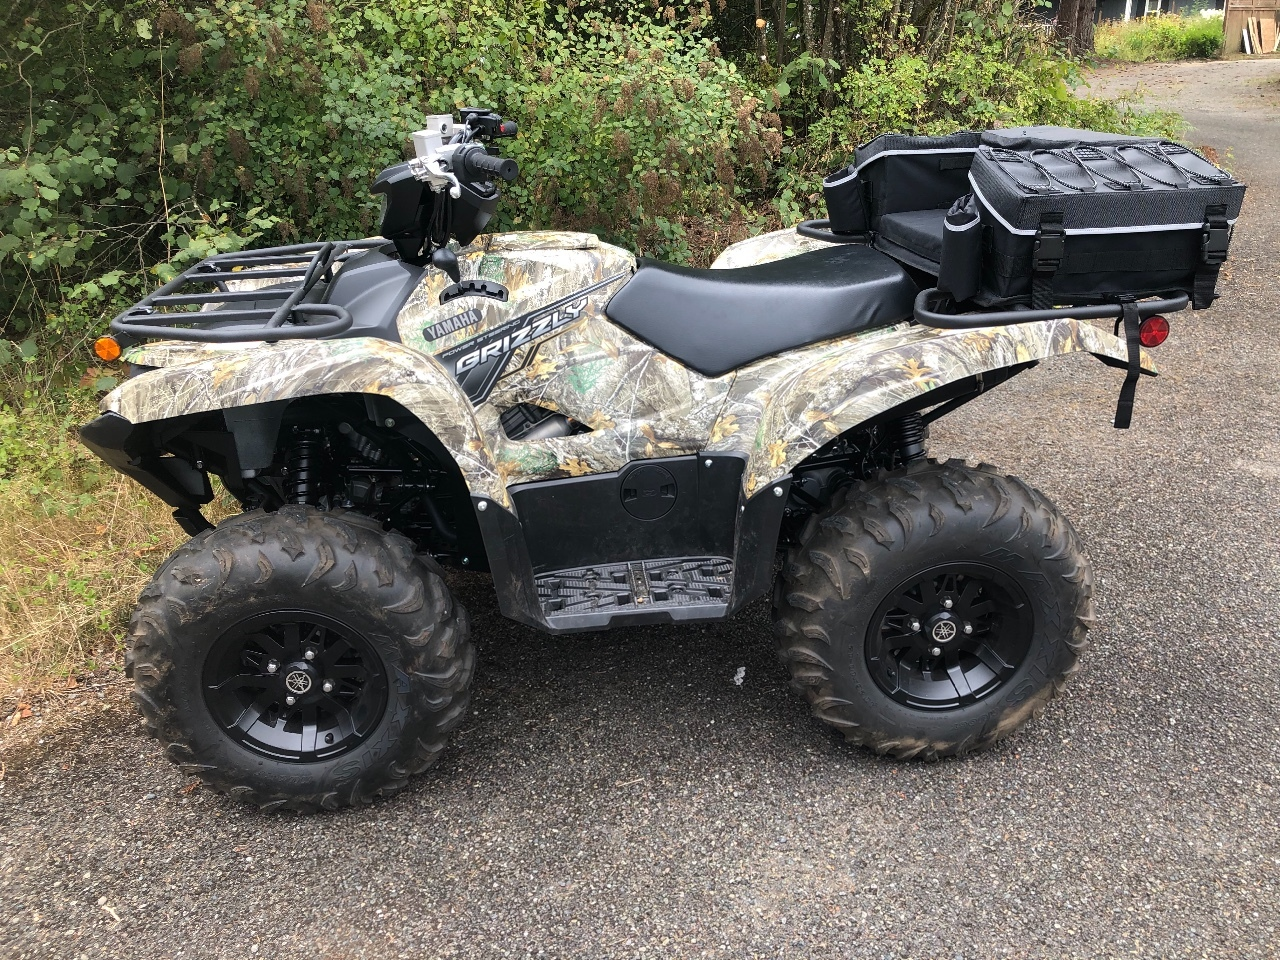 Yamaha For Sale - Yamaha ATVs - ATV Trader